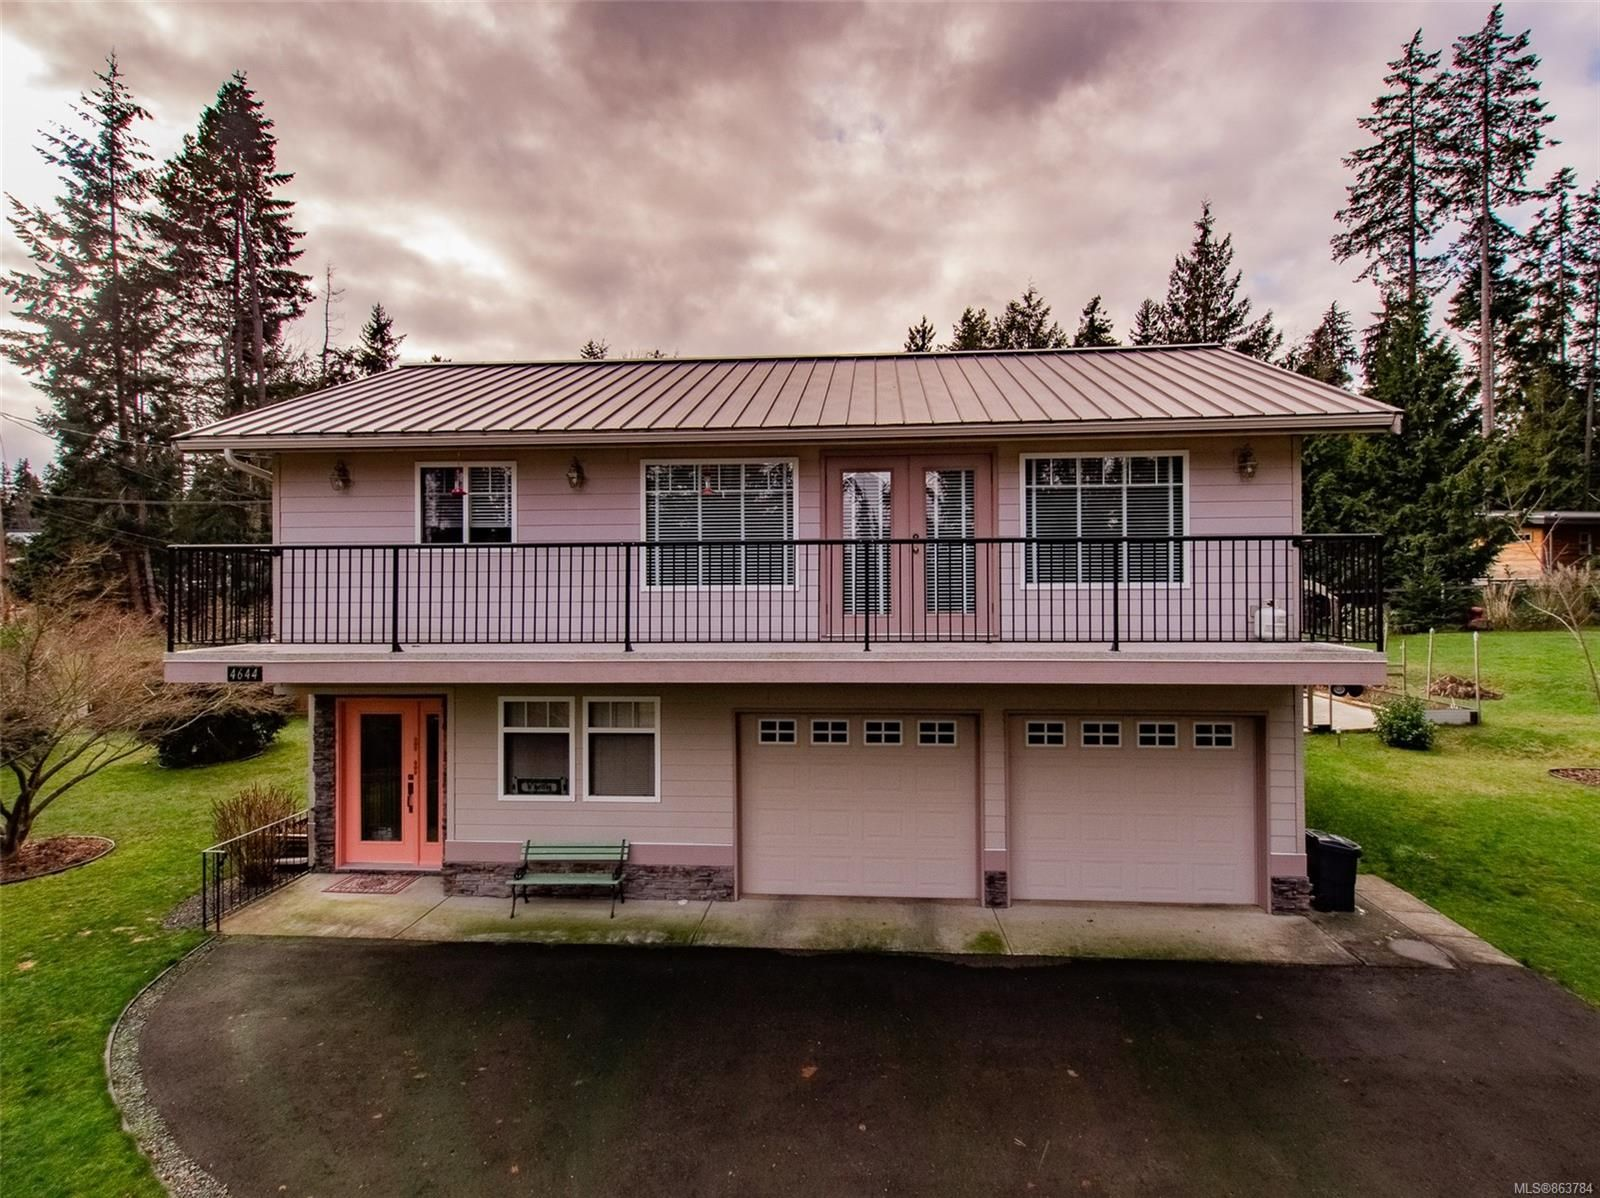 Main Photo: 4644 Berbers Dr in : PQ Bowser/Deep Bay House for sale (Parksville/Qualicum)  : MLS®# 863784